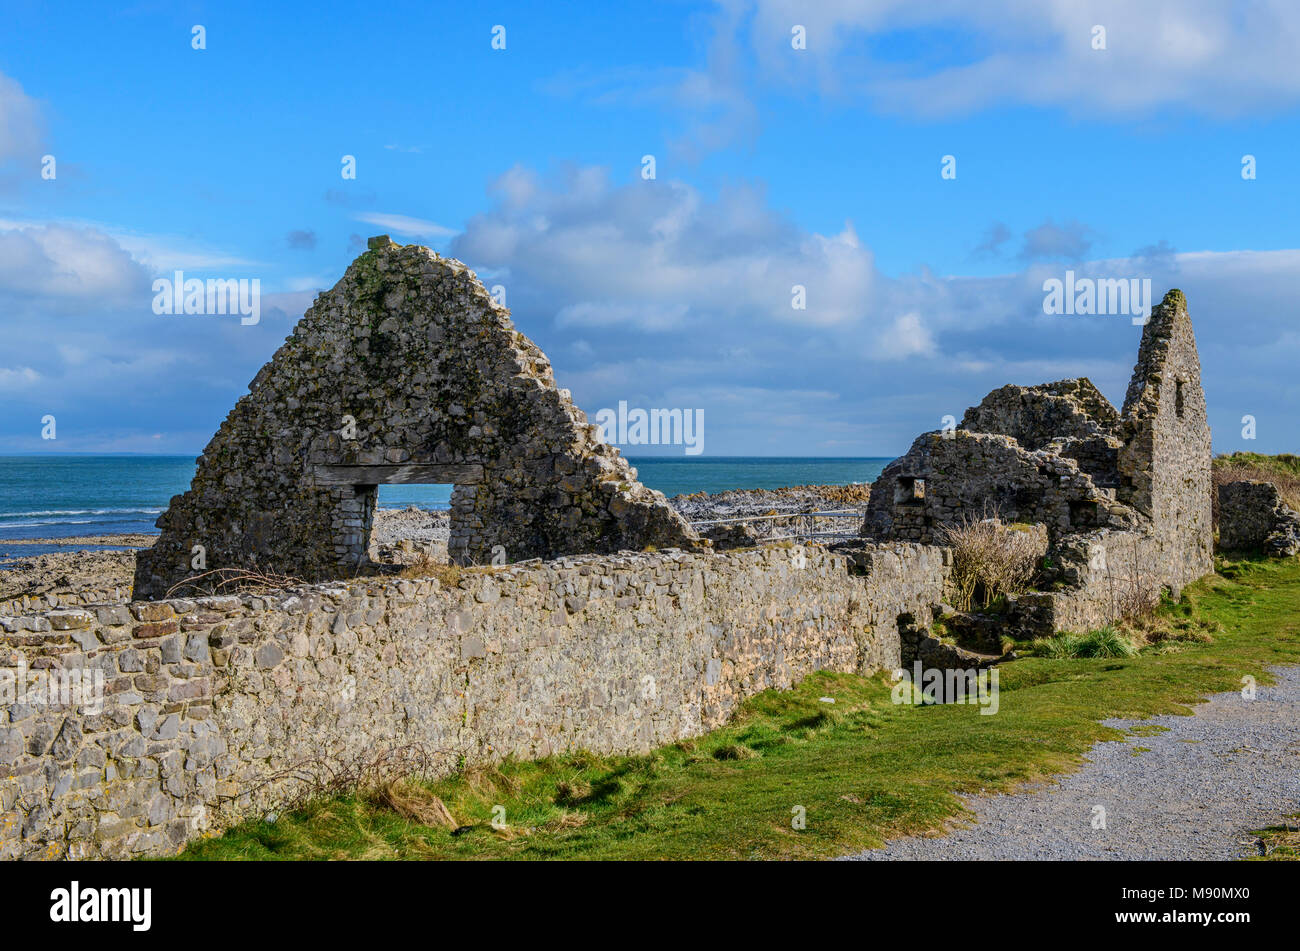 The ruins of the Salt Houses at Port Eynon Gower Peninsula south Wales - Stock Image